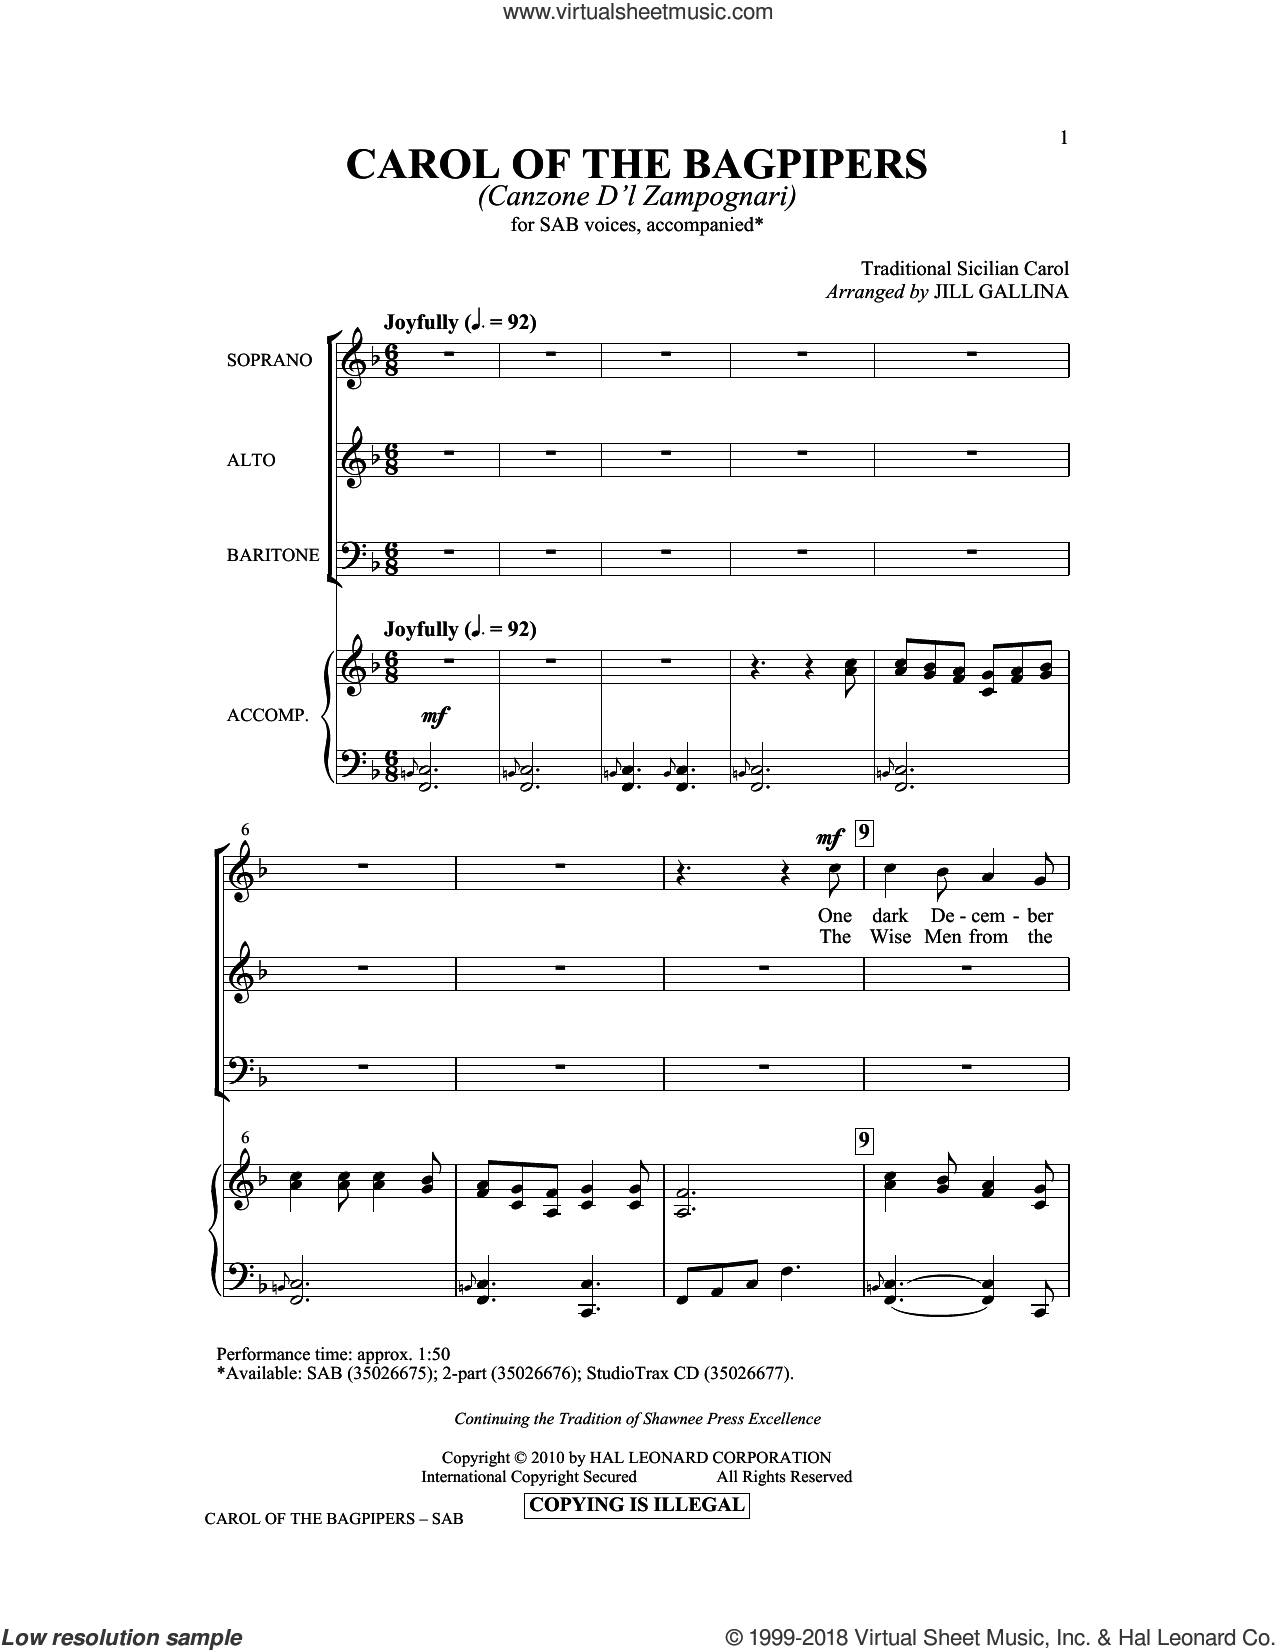 Carol Of The Bagpipers (Canzone D'l Zampognari) sheet music for choir (SAB) by Jill Gallina. Score Image Preview.